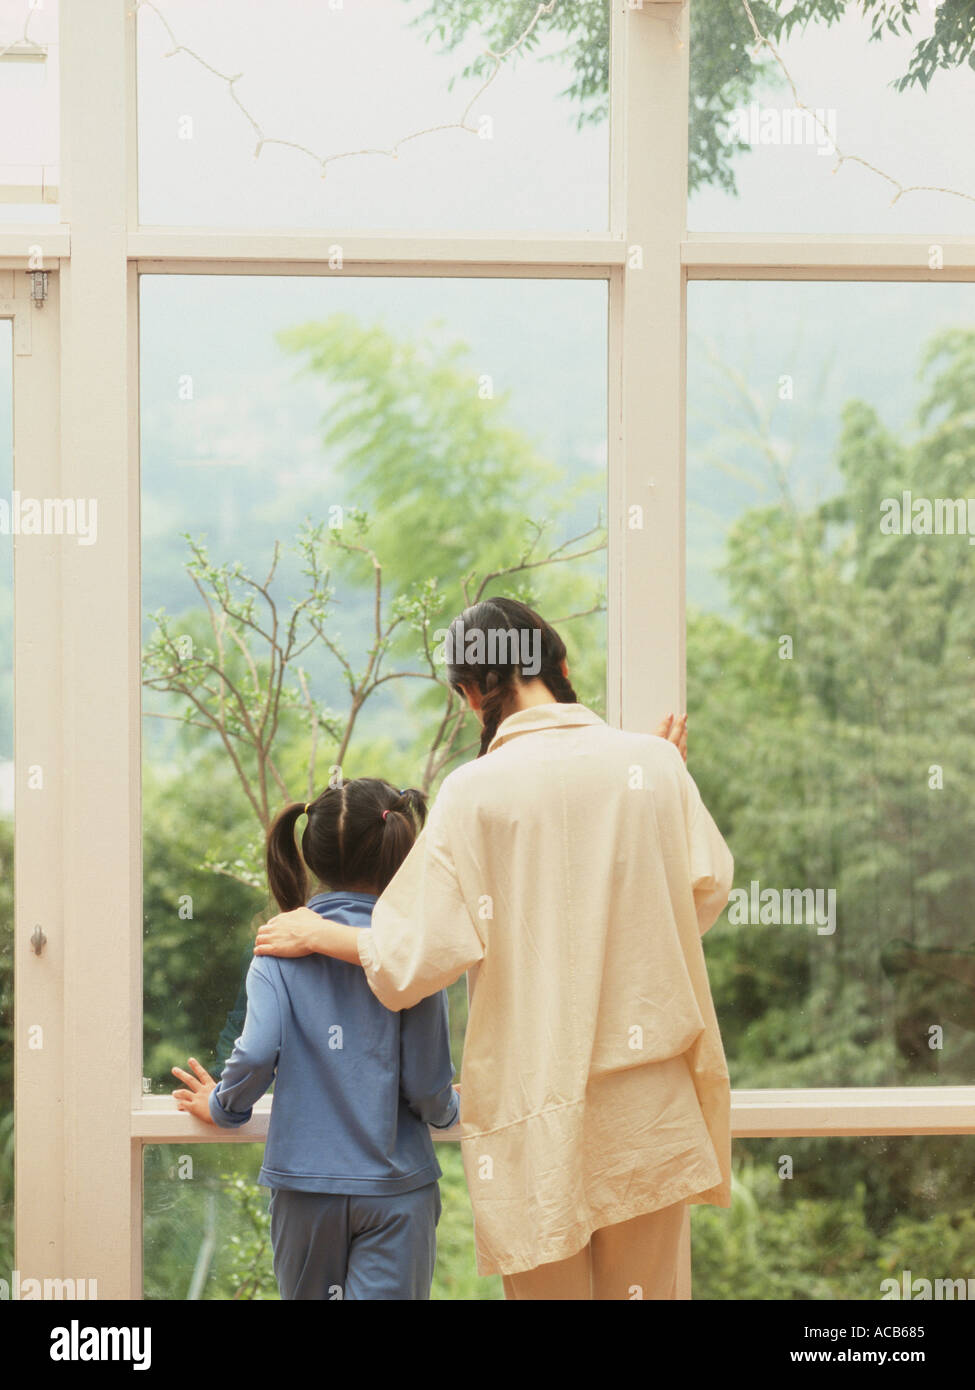 Weekend Family At Home - Stock Image